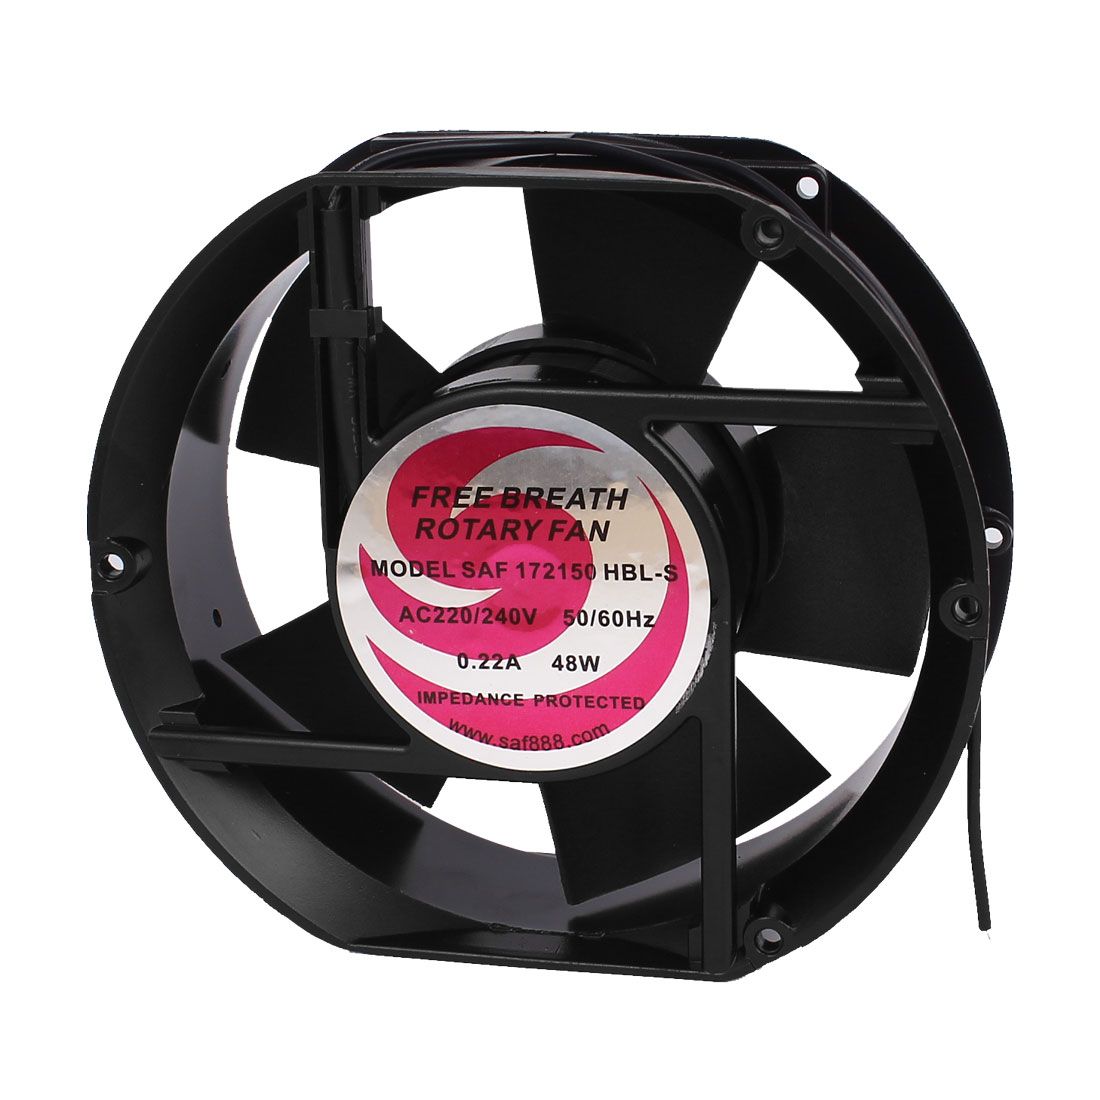 AC 220-240V 0.22A Oval Shaped Ball Bearing Axial Cooling Fan 17 x 15 x 5.1cm